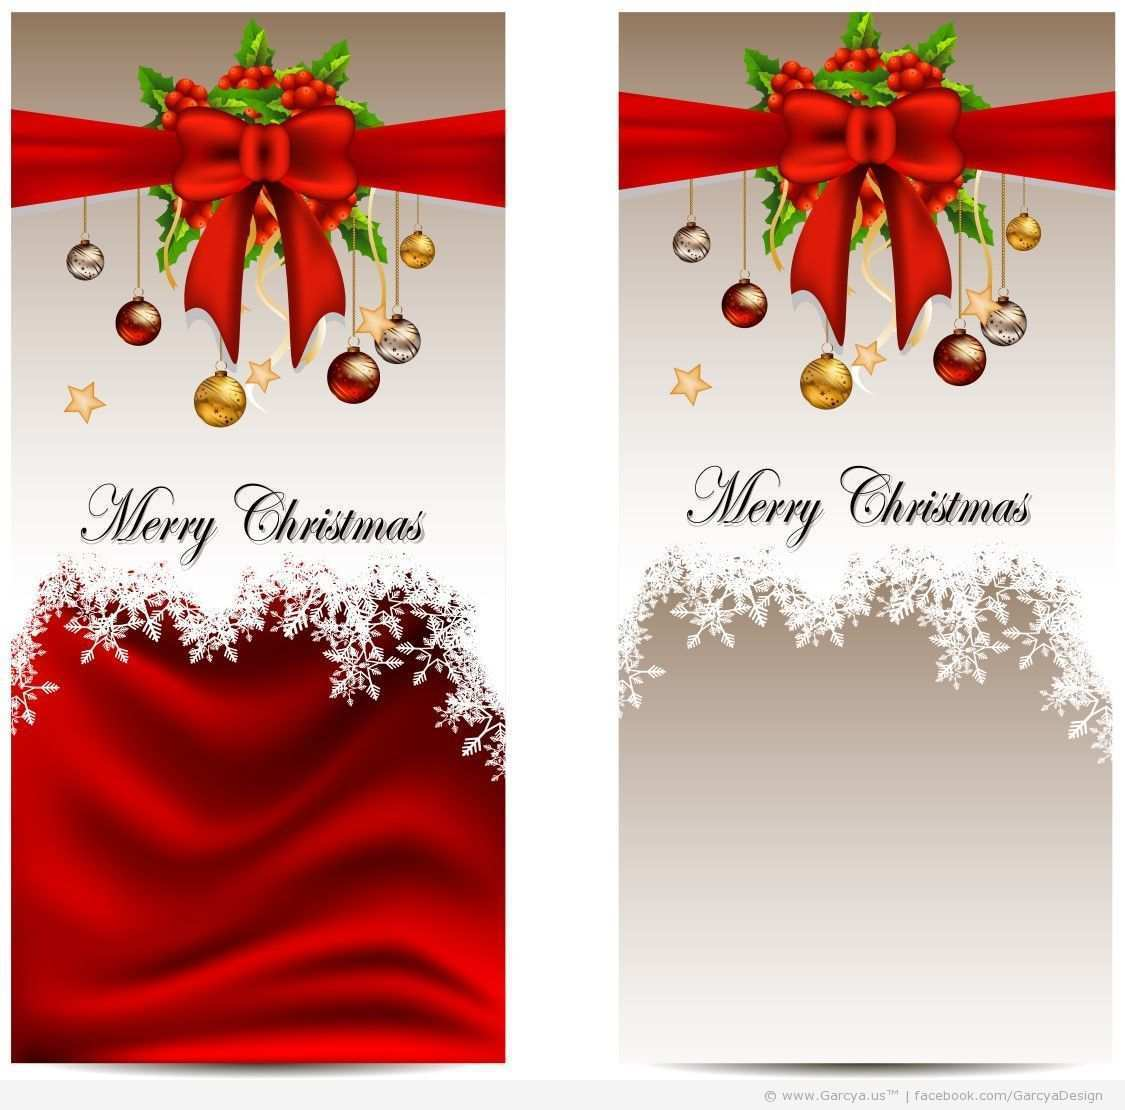 19 Standard Christmas Greeting Card Template Free Download Photo By Christmas Greeting Card Template Free Download Cards Design Templates